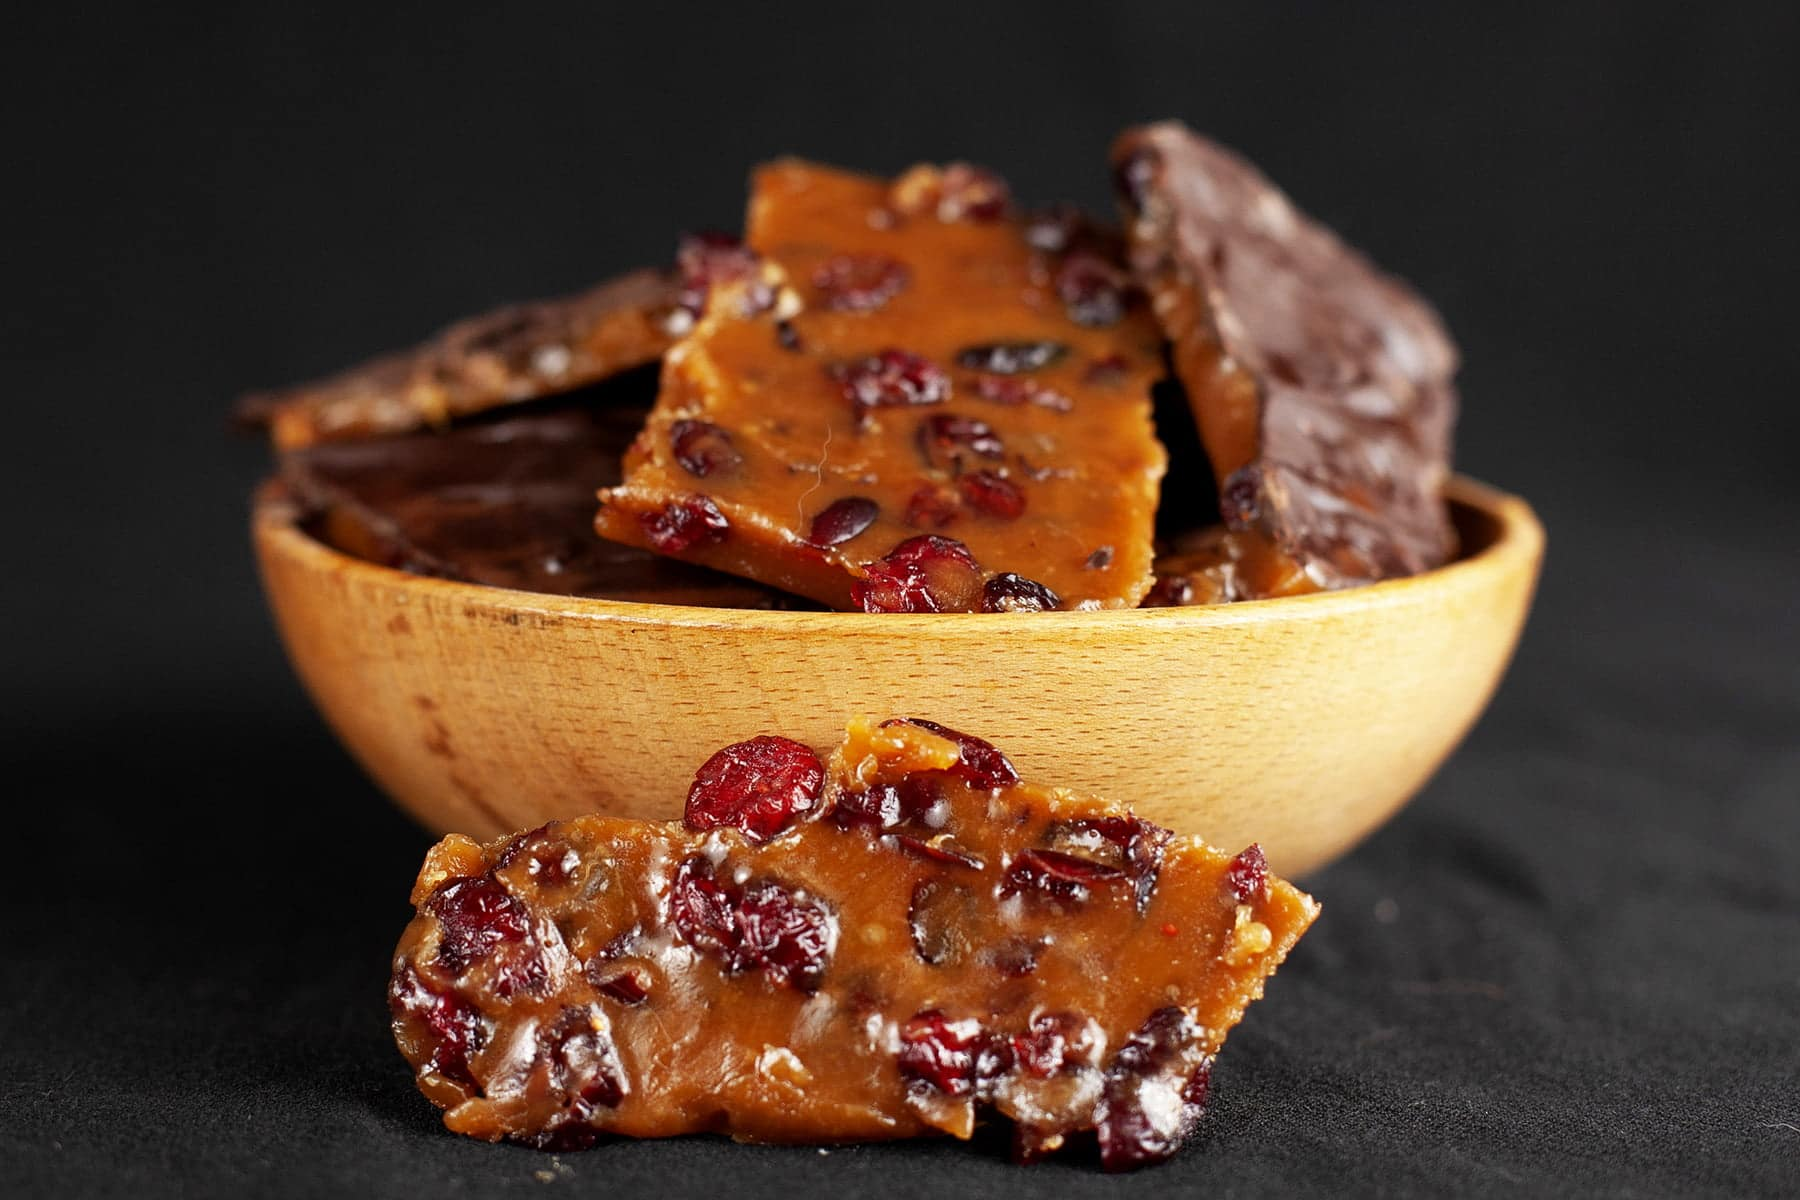 A small wooden bowl with slabs of orange-brown toffee in it. There are dried cranberries throughout the toffee, and some slabs have a layer of chocolate on top.